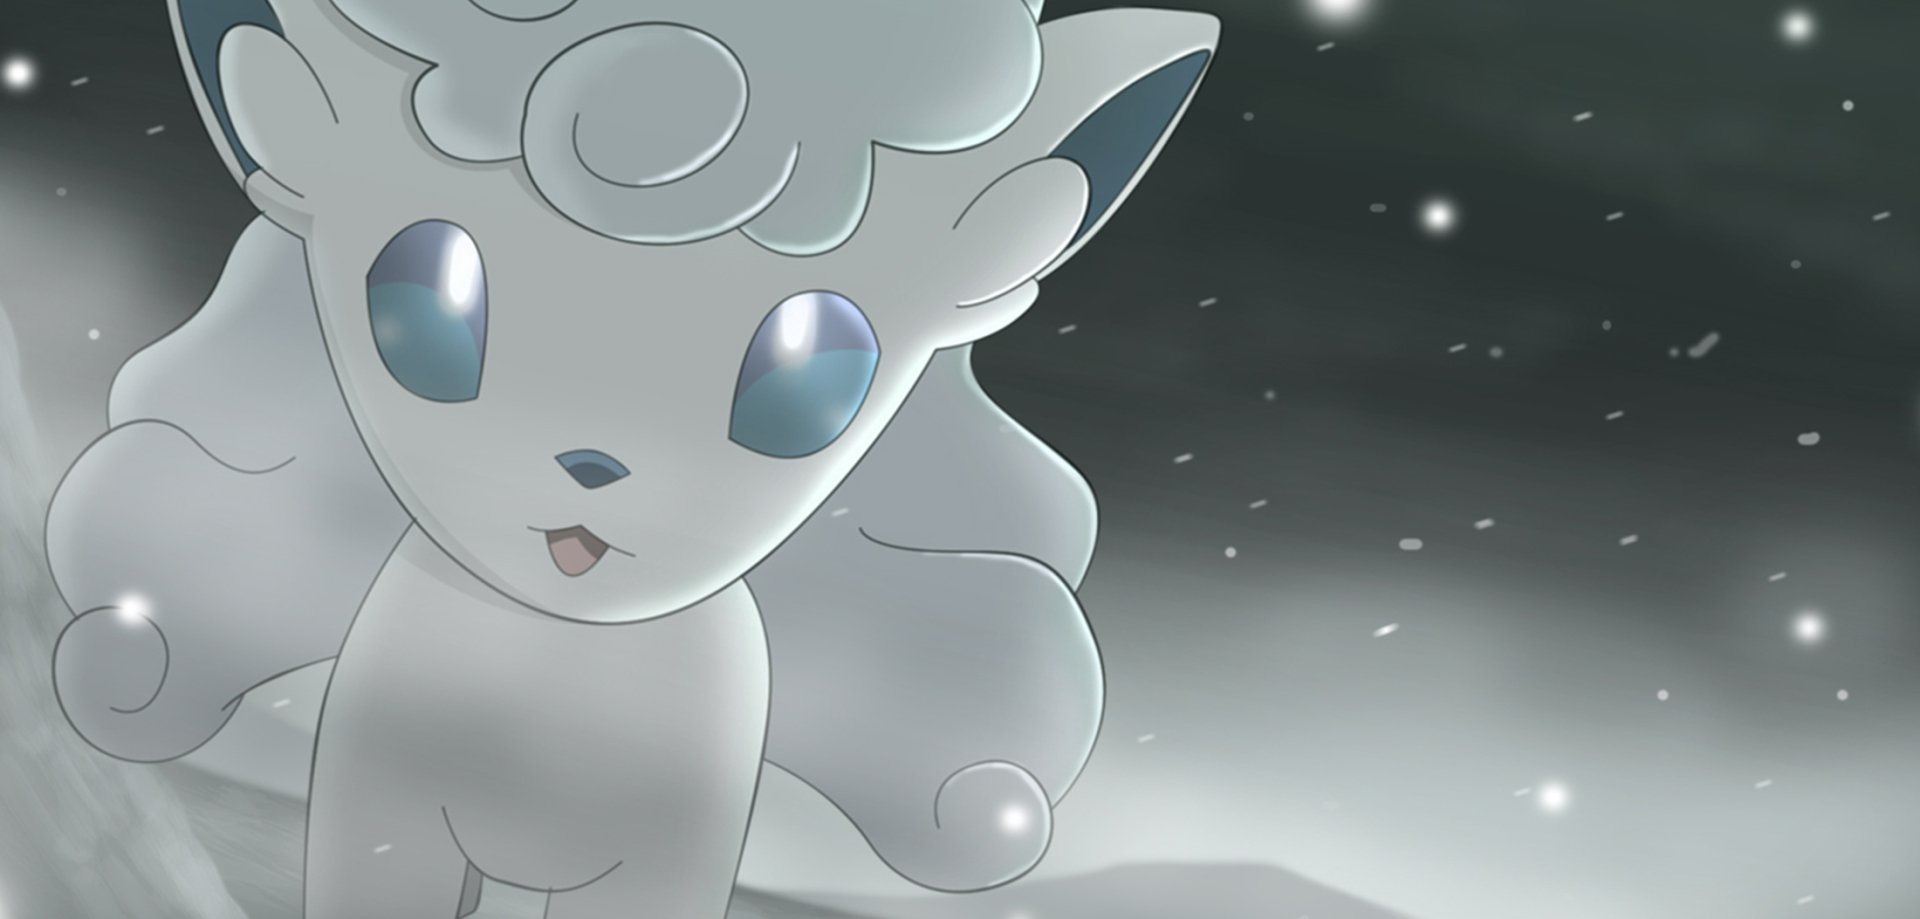 Alolan Vulpix Wallpaper and Background Image | 2200x1053 ... Vulpix Wallpaper